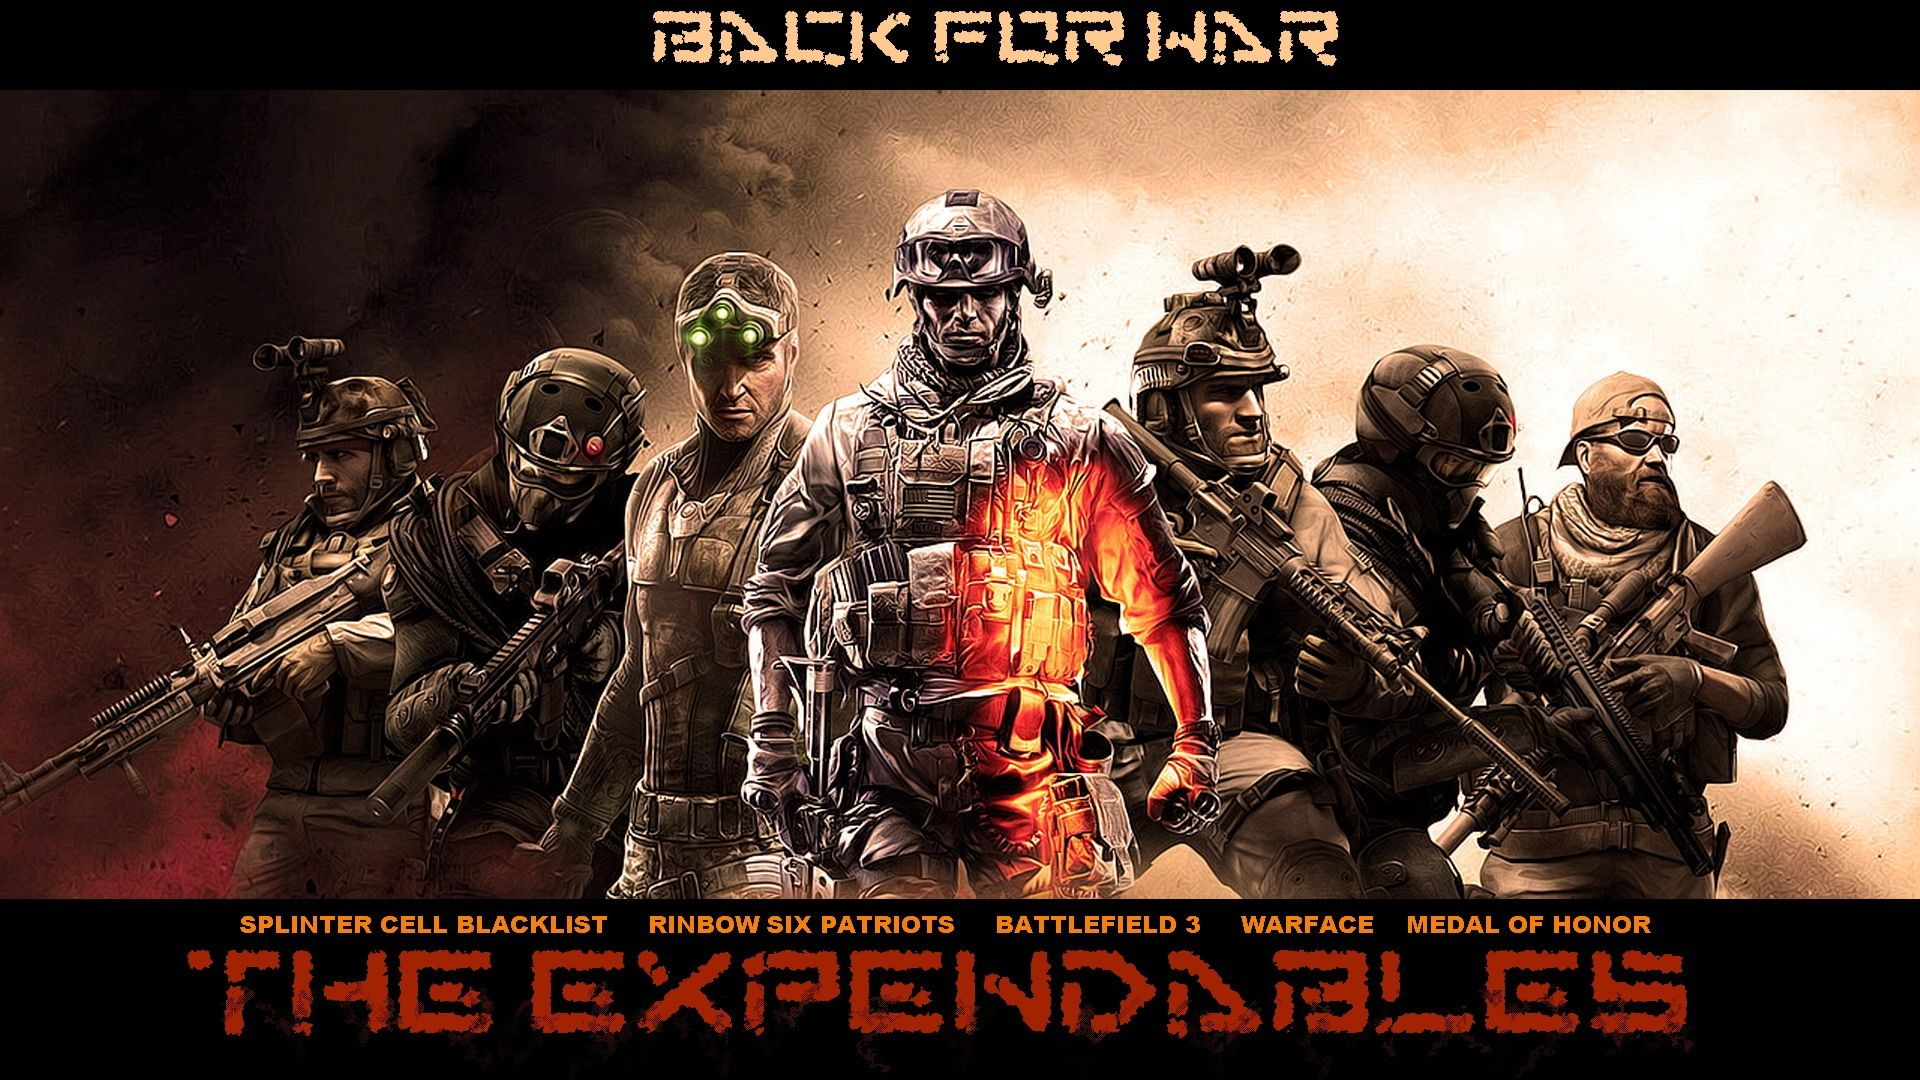 The Expendables Game 1080p Widescreen Hd Wallpapers